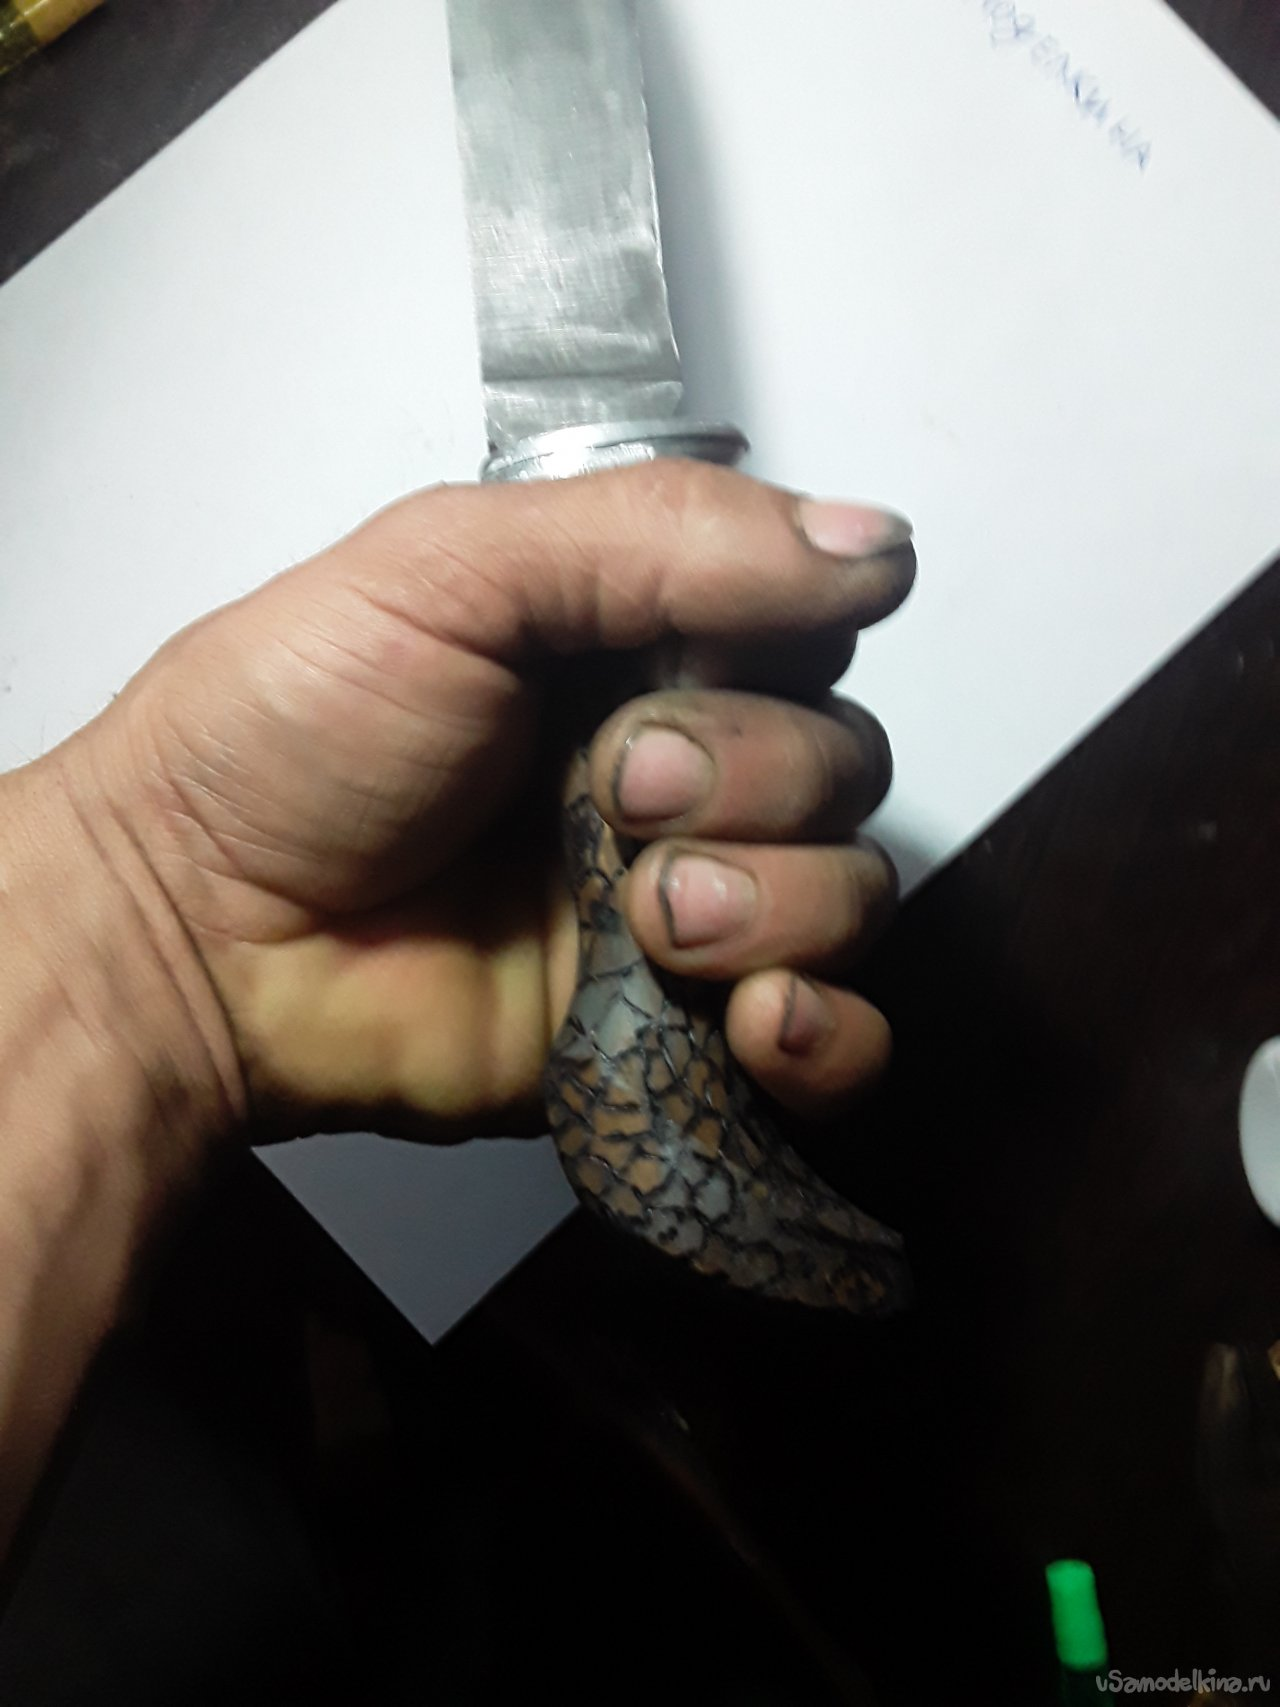 Spring forged knife